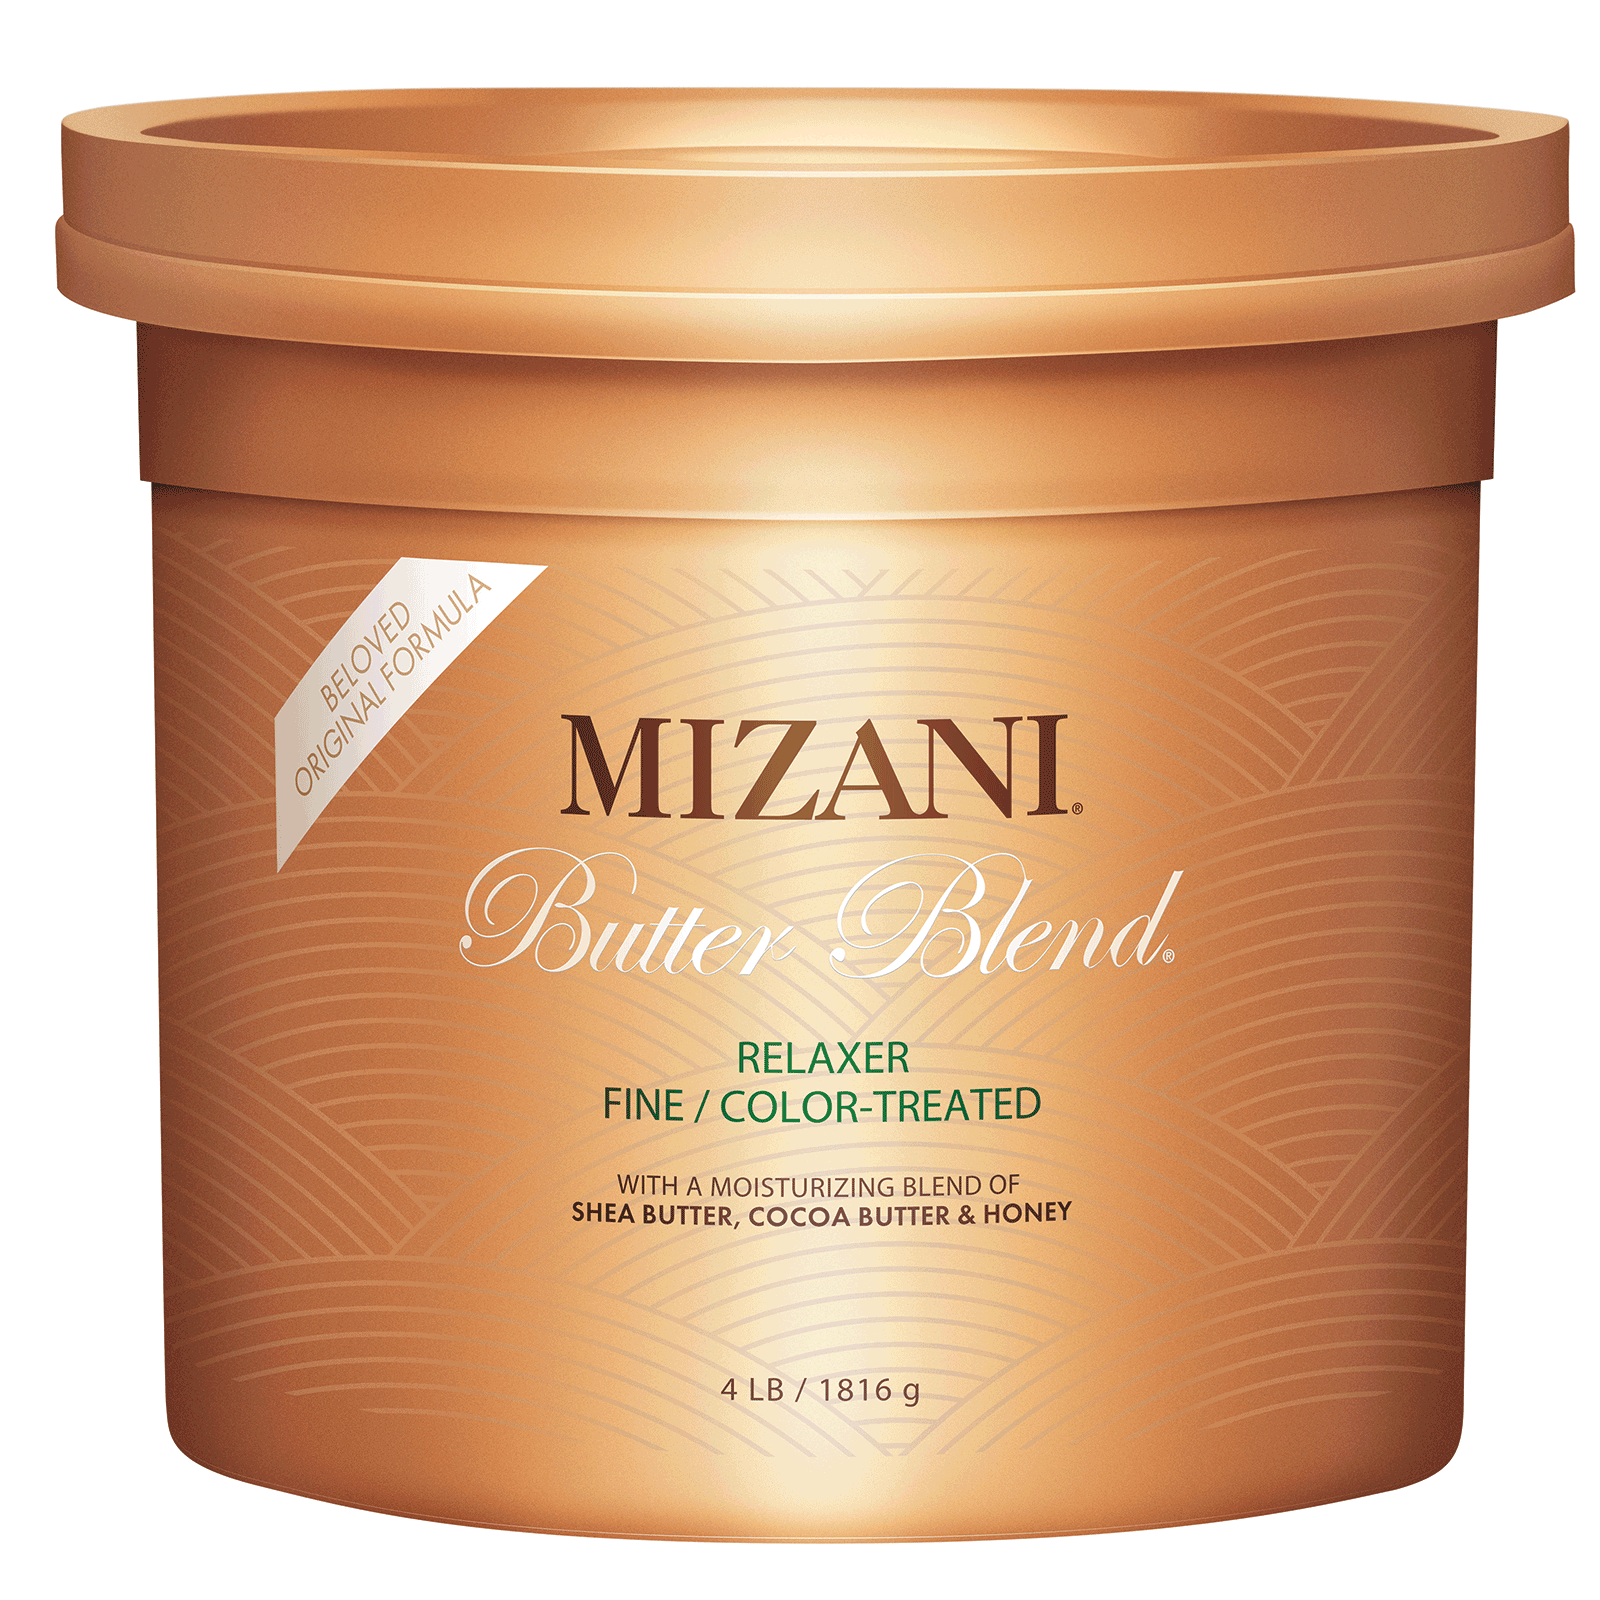 Butter Blend Relaxer For Finecolor Treated Hair 4 Lb Mizani